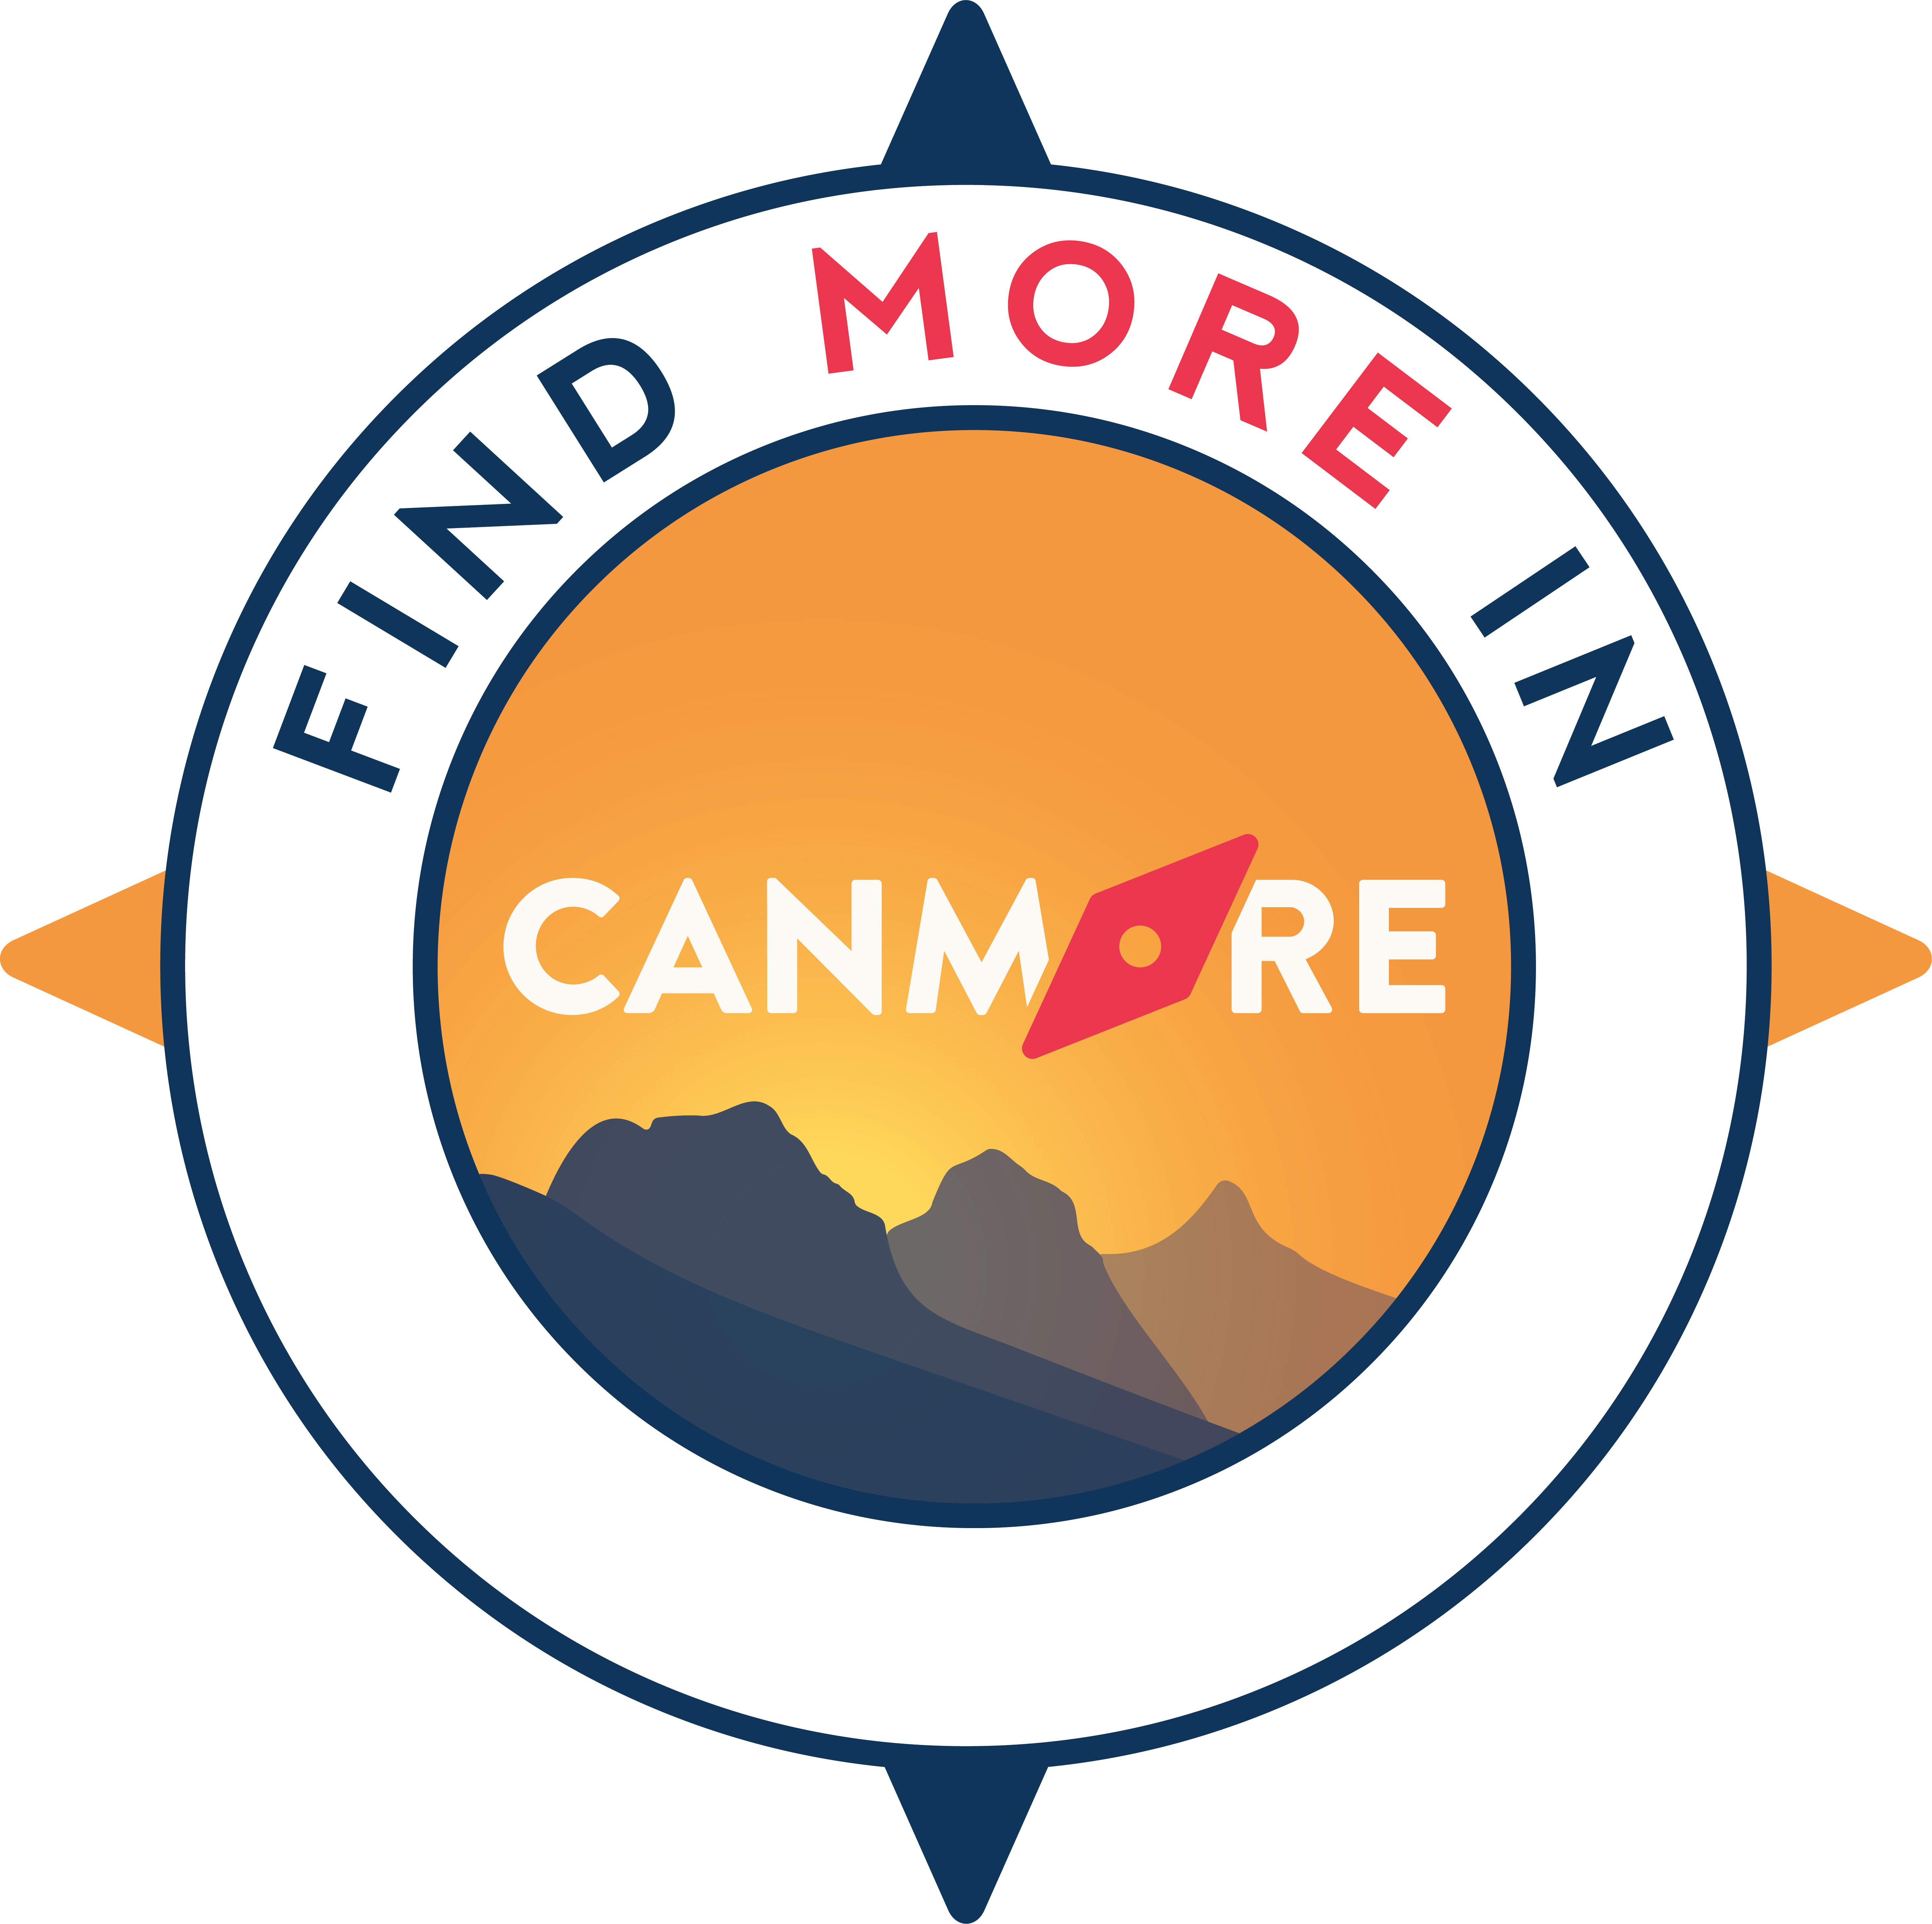 Find More In Canmore